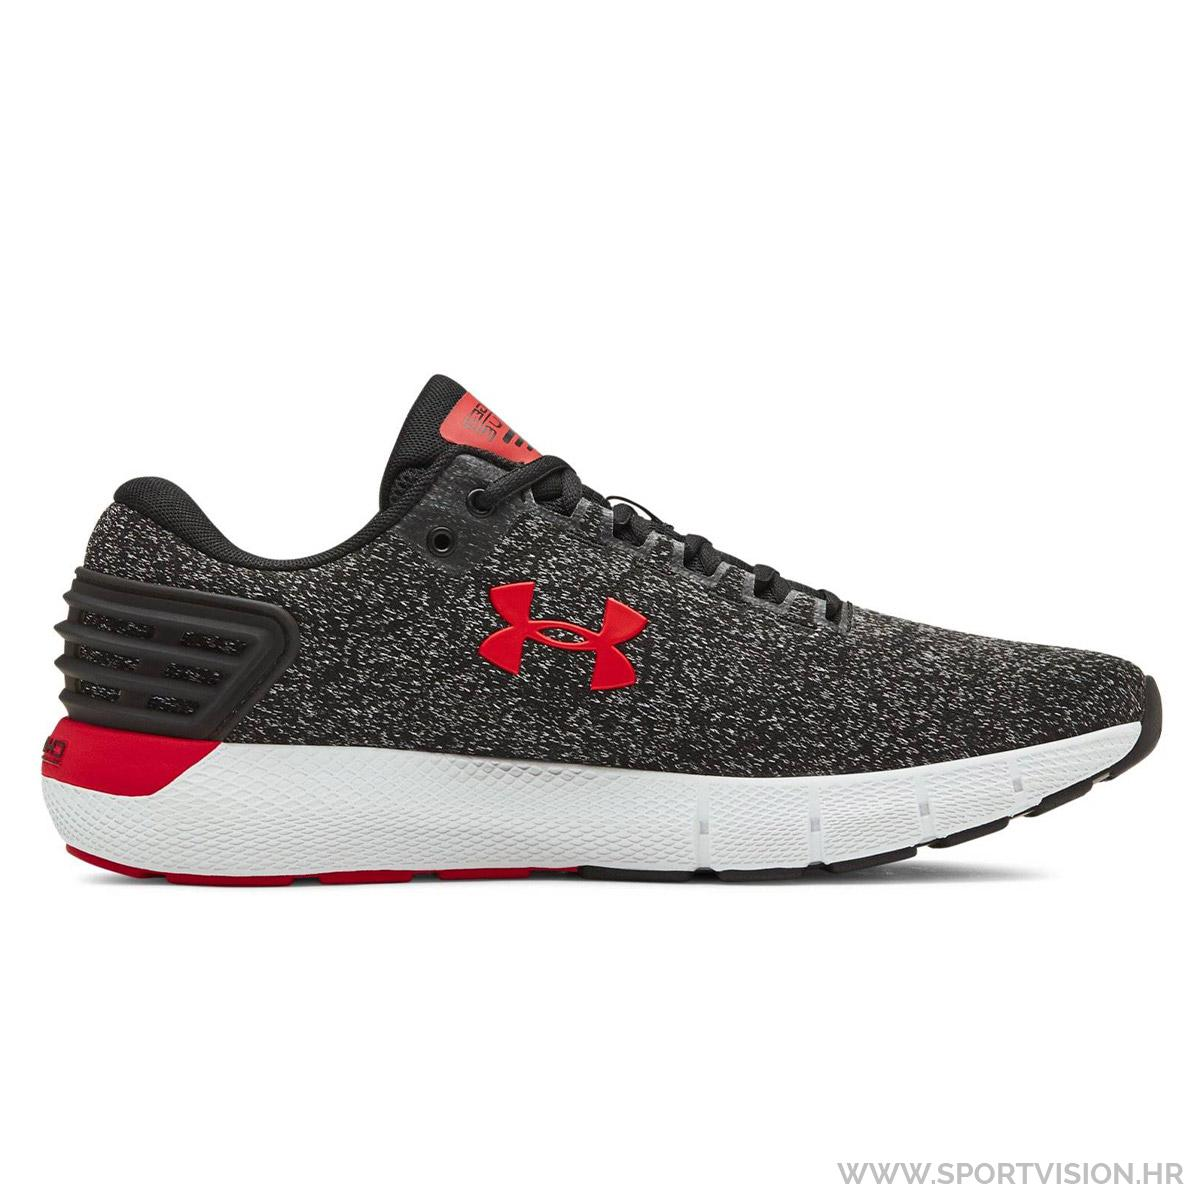 UNDER ARMOUR tenisice  CHARGED ROGUE TWIST